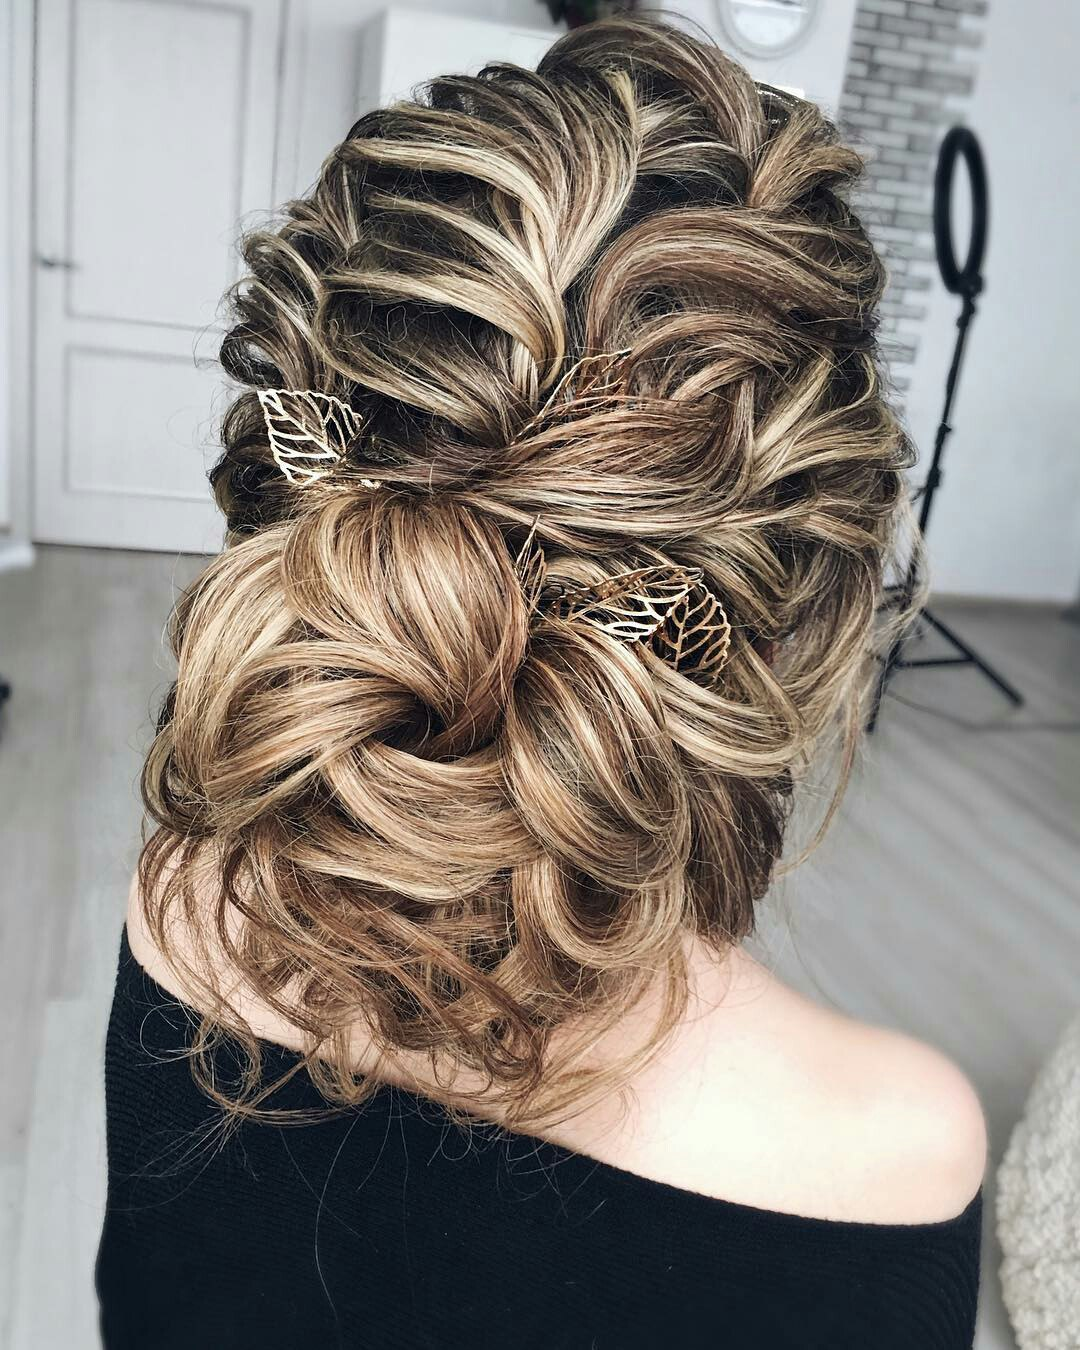 Greek hairstyles grecian hairstyle ideas for women ladylife theres also a second option you can use a headband instead of a bandage for the greek hairstyle as itll be more comfortable solutioingenieria Gallery